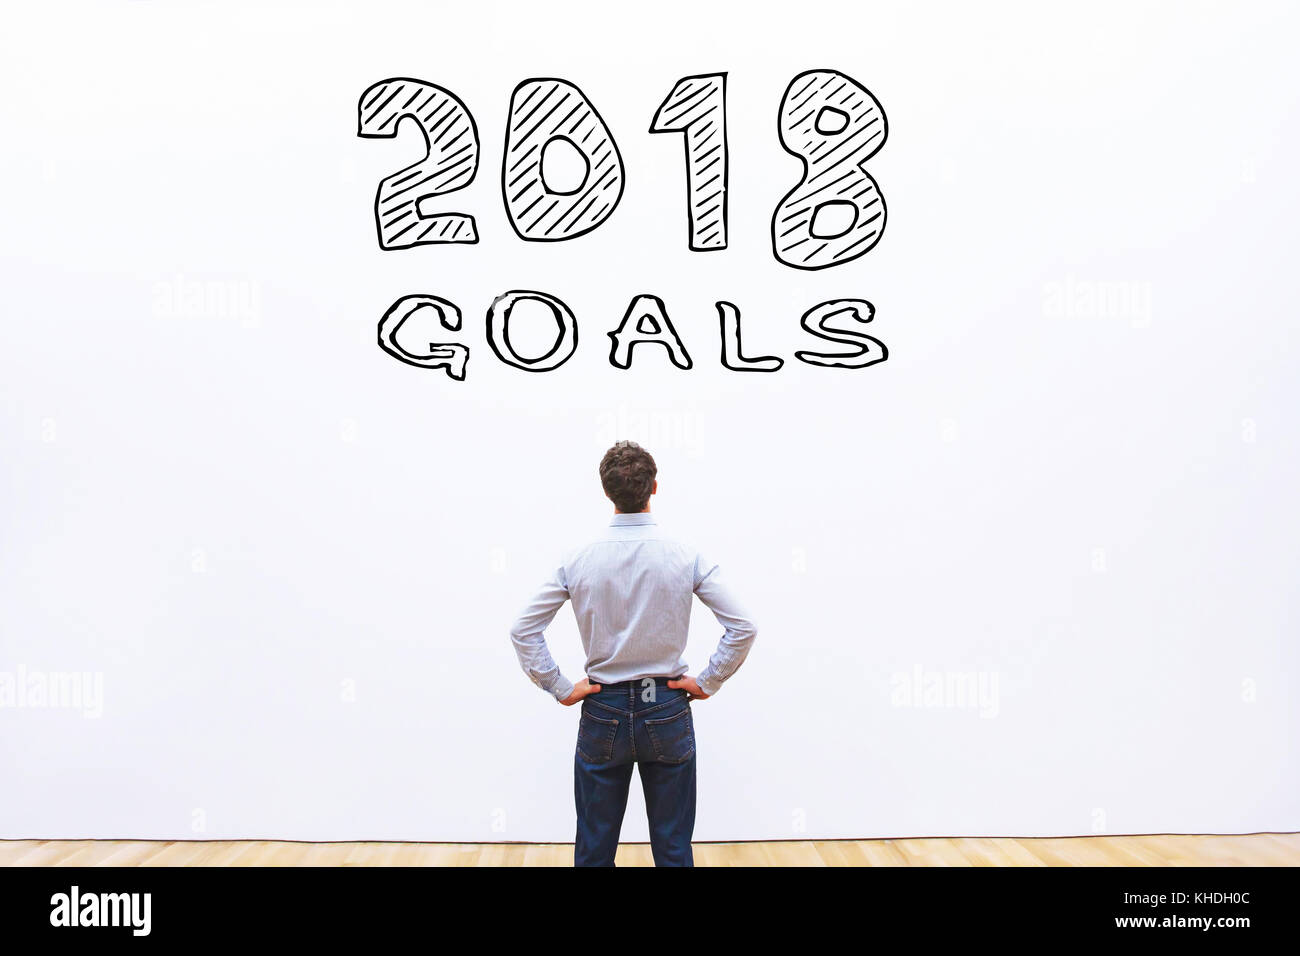 goals 2018 concept, business plan to achieve - Stock Image